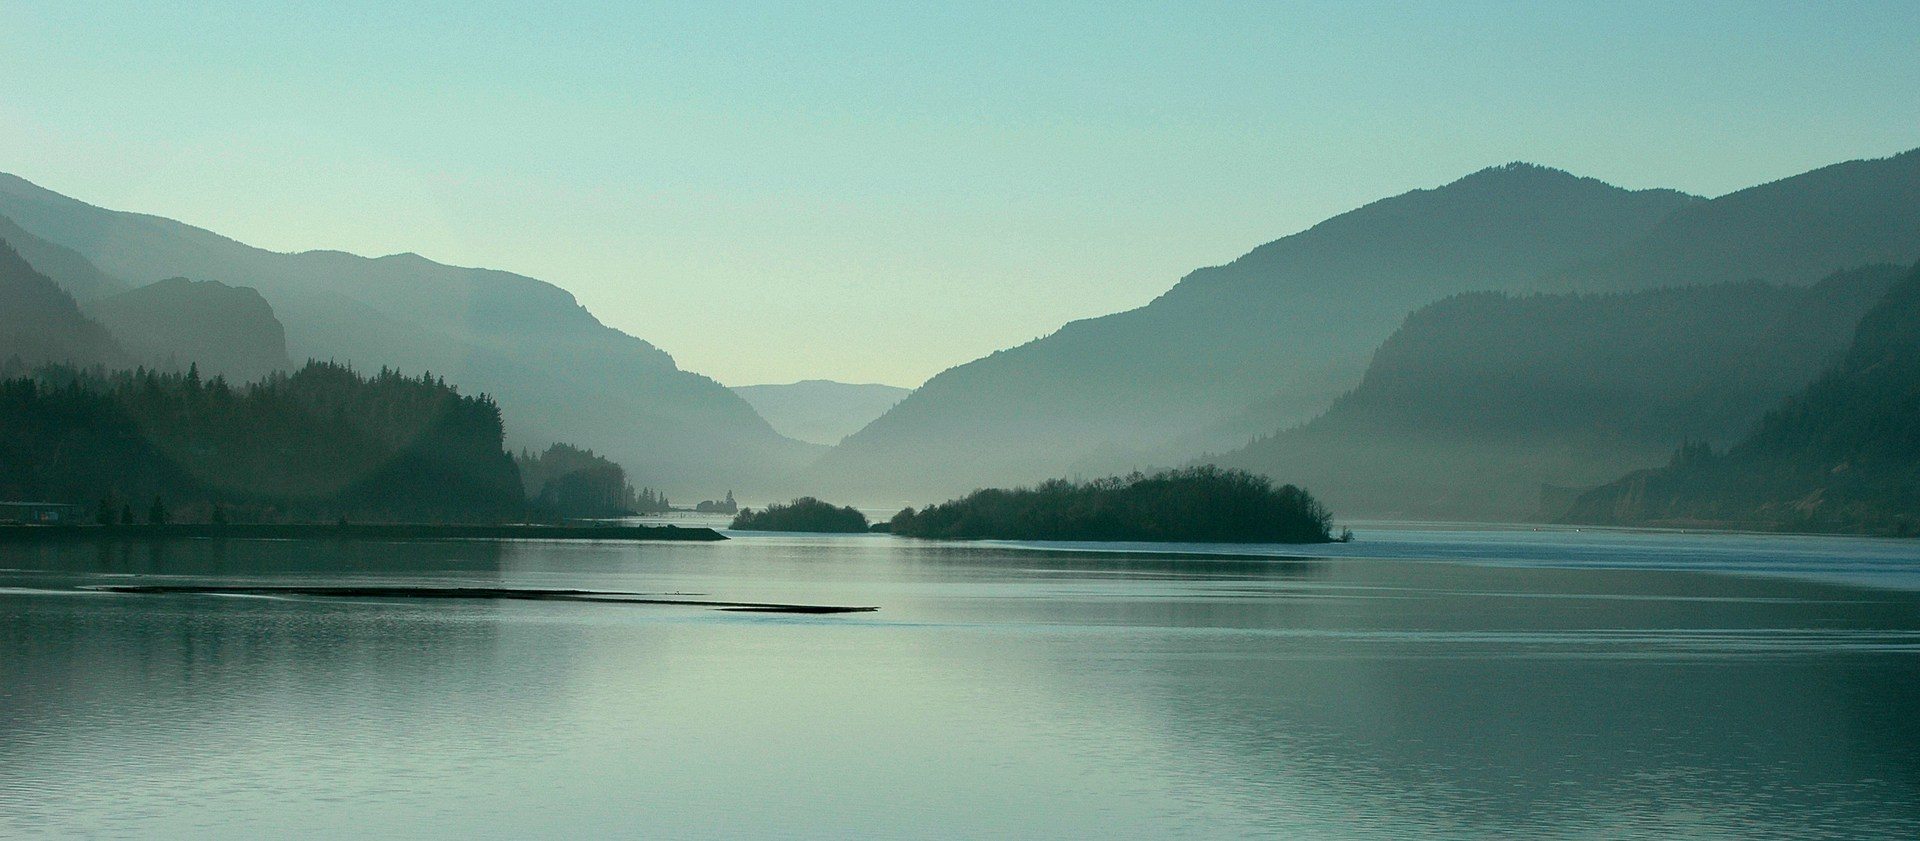 Photo of the Columbia River Gorge from the White Salmon/Hood River Bridge.